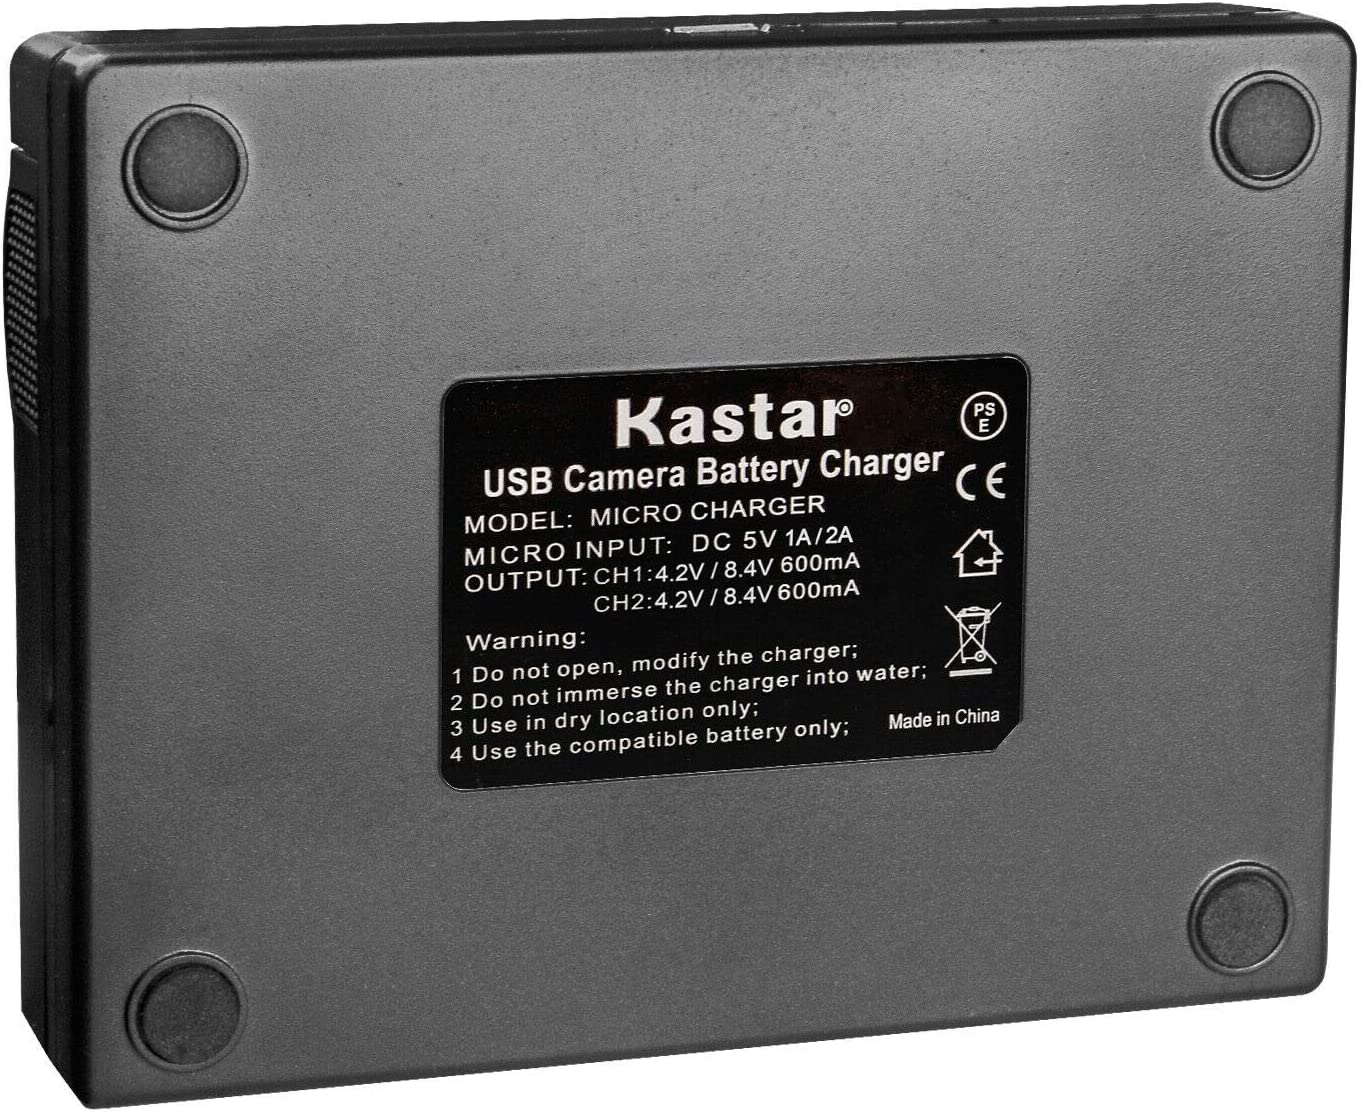 Kastar Charger Replace for Canon BP-970G BP-975 BP-945 BP950 BP-950G BP-955 UC-X2 UC-X2Hi UC-X30 UC-X30Hi UC-X40 UC-X40Hi UC-X45 UC-X50 UC-X55 V40 V40Hi XF100 XF105 XF200 XF205 XF300 XF305 XH-A1 XH-A1